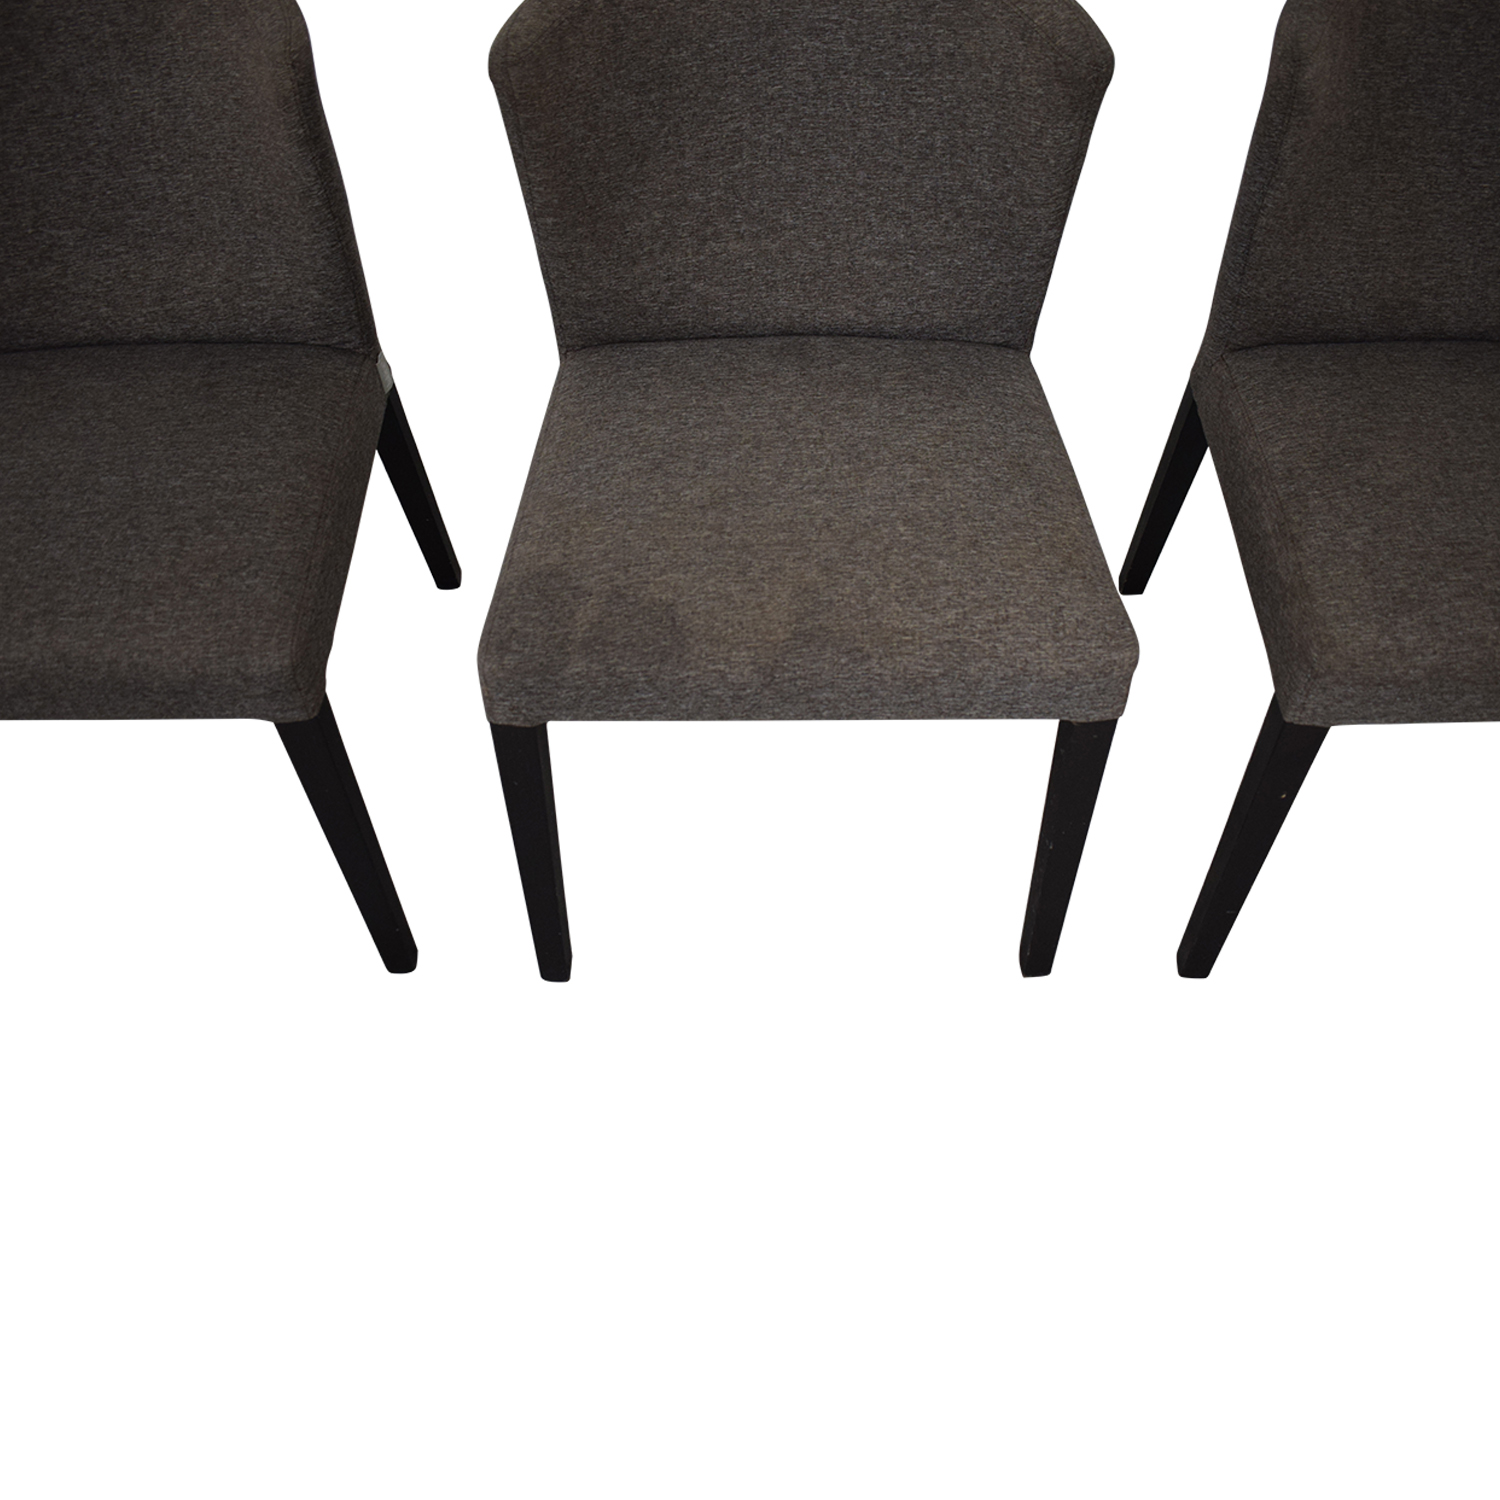 Heal's of London Heals of London Habitat Grey Upholstered Dining Chairs for sale